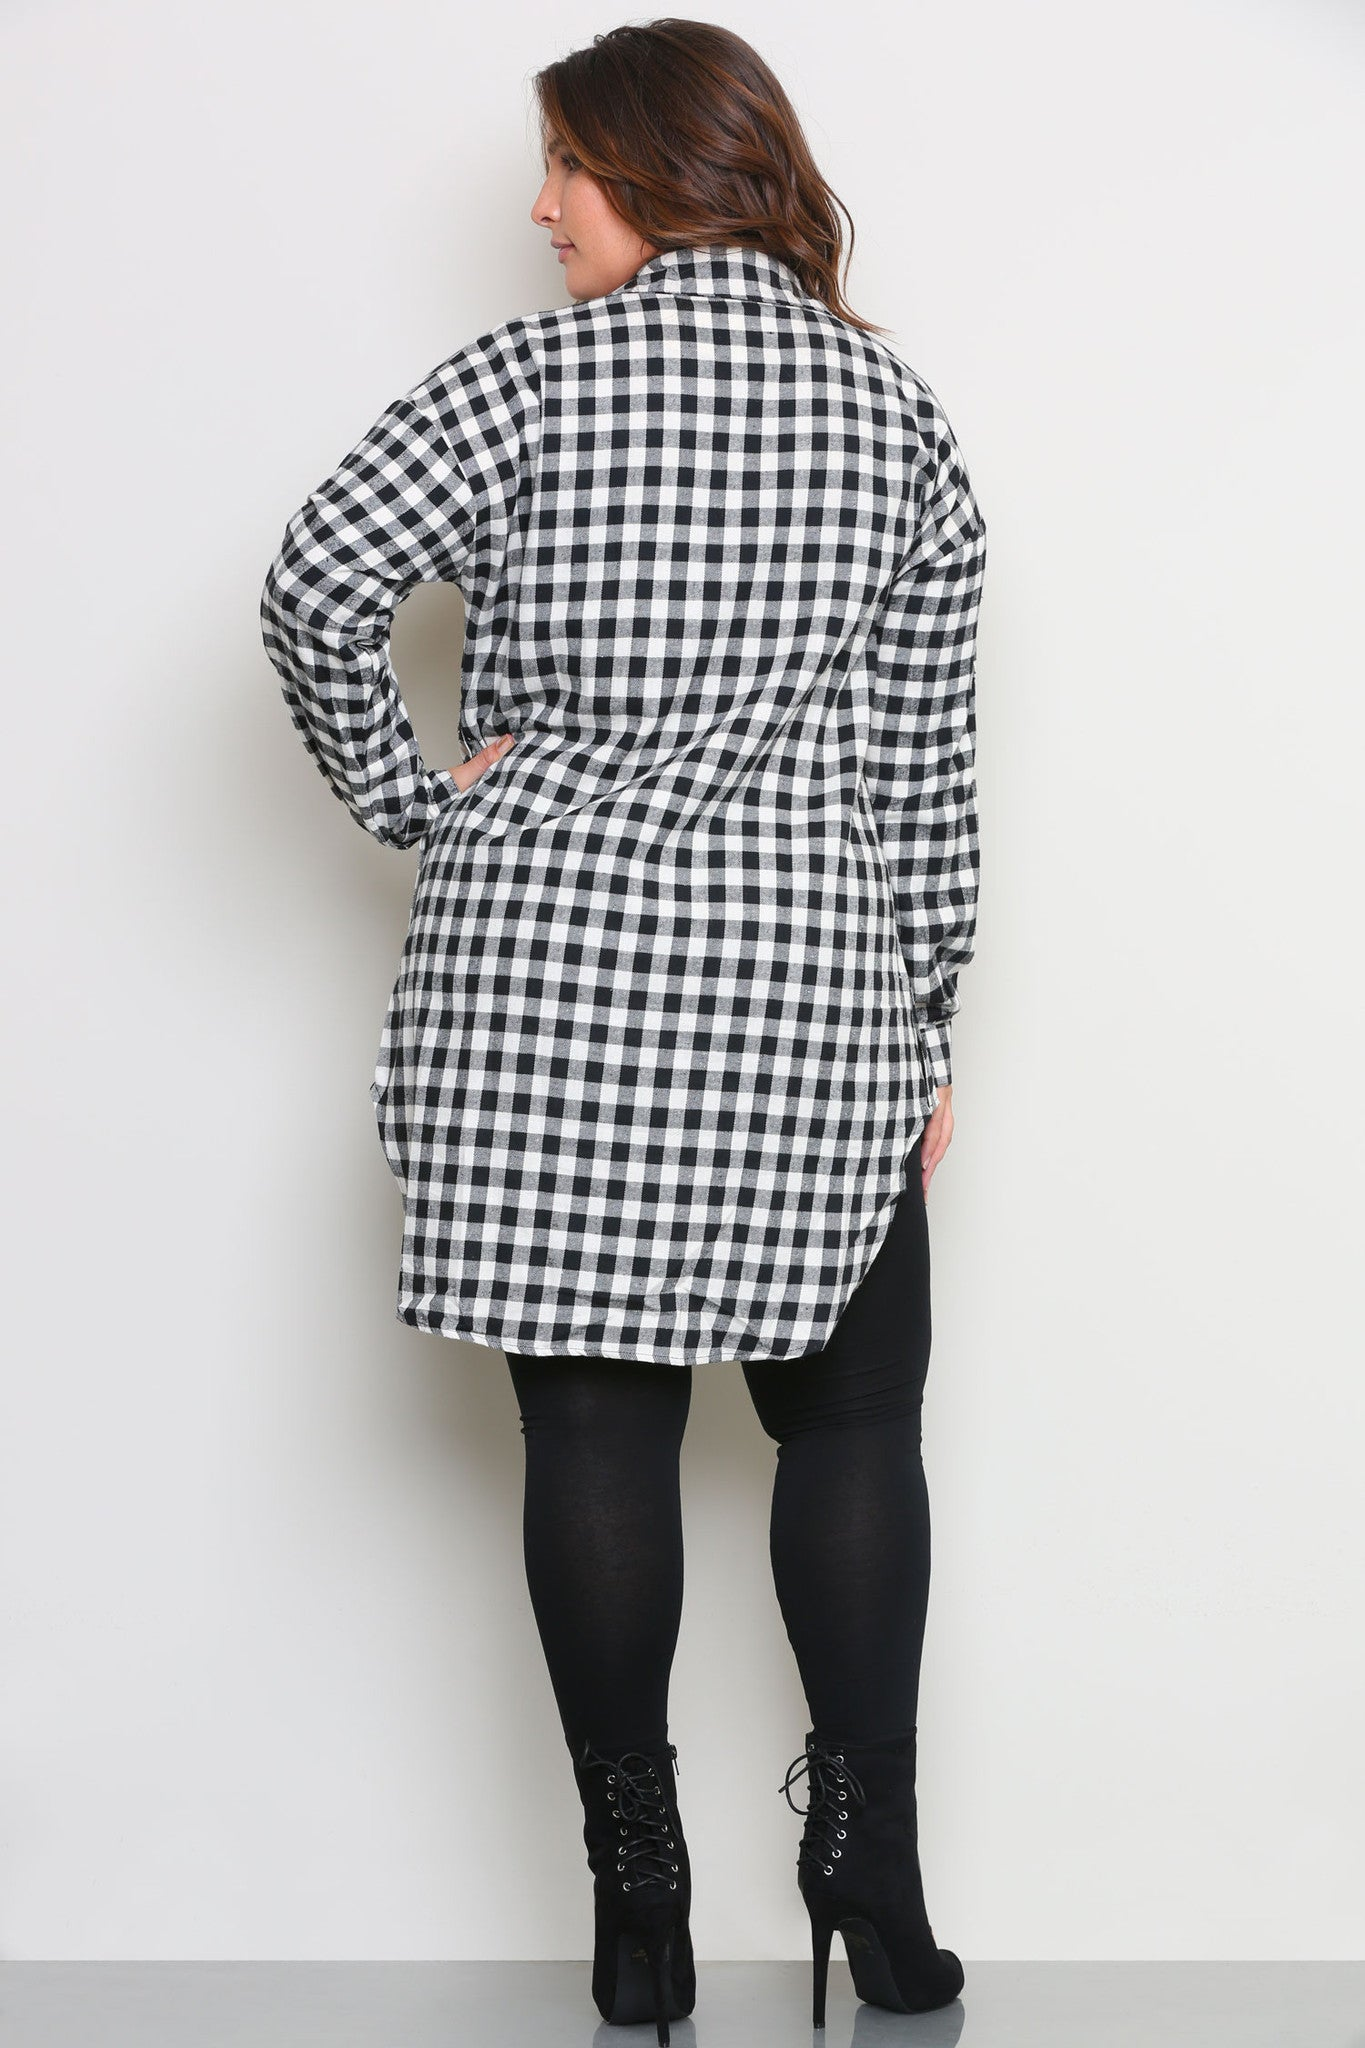 RONNIE FLANNEL SHIRTDRESS - Glam Envy - 3